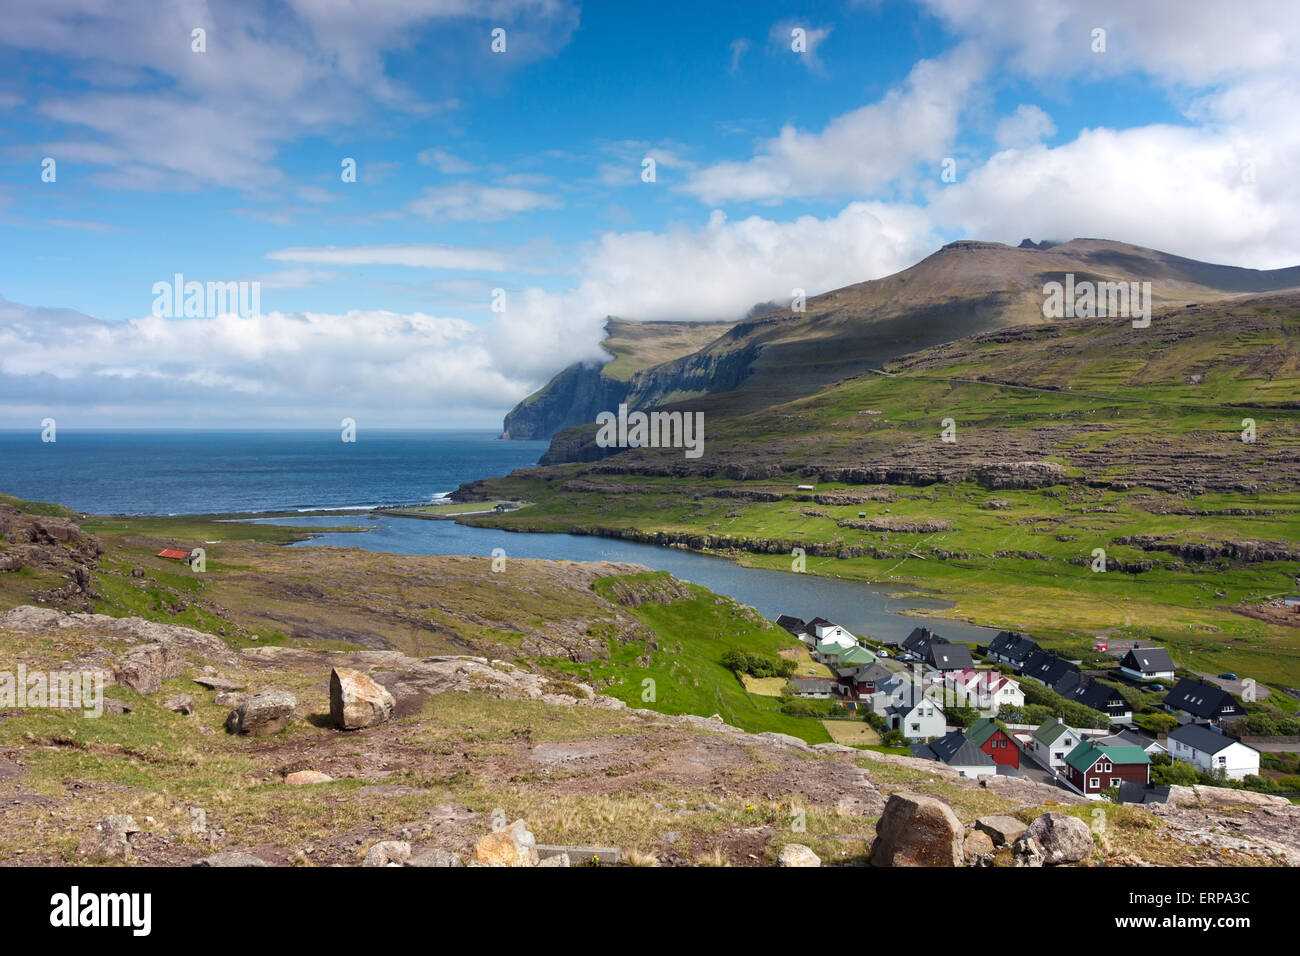 Faroe Islands, village surrounded by unspoilt nature - Stock Image